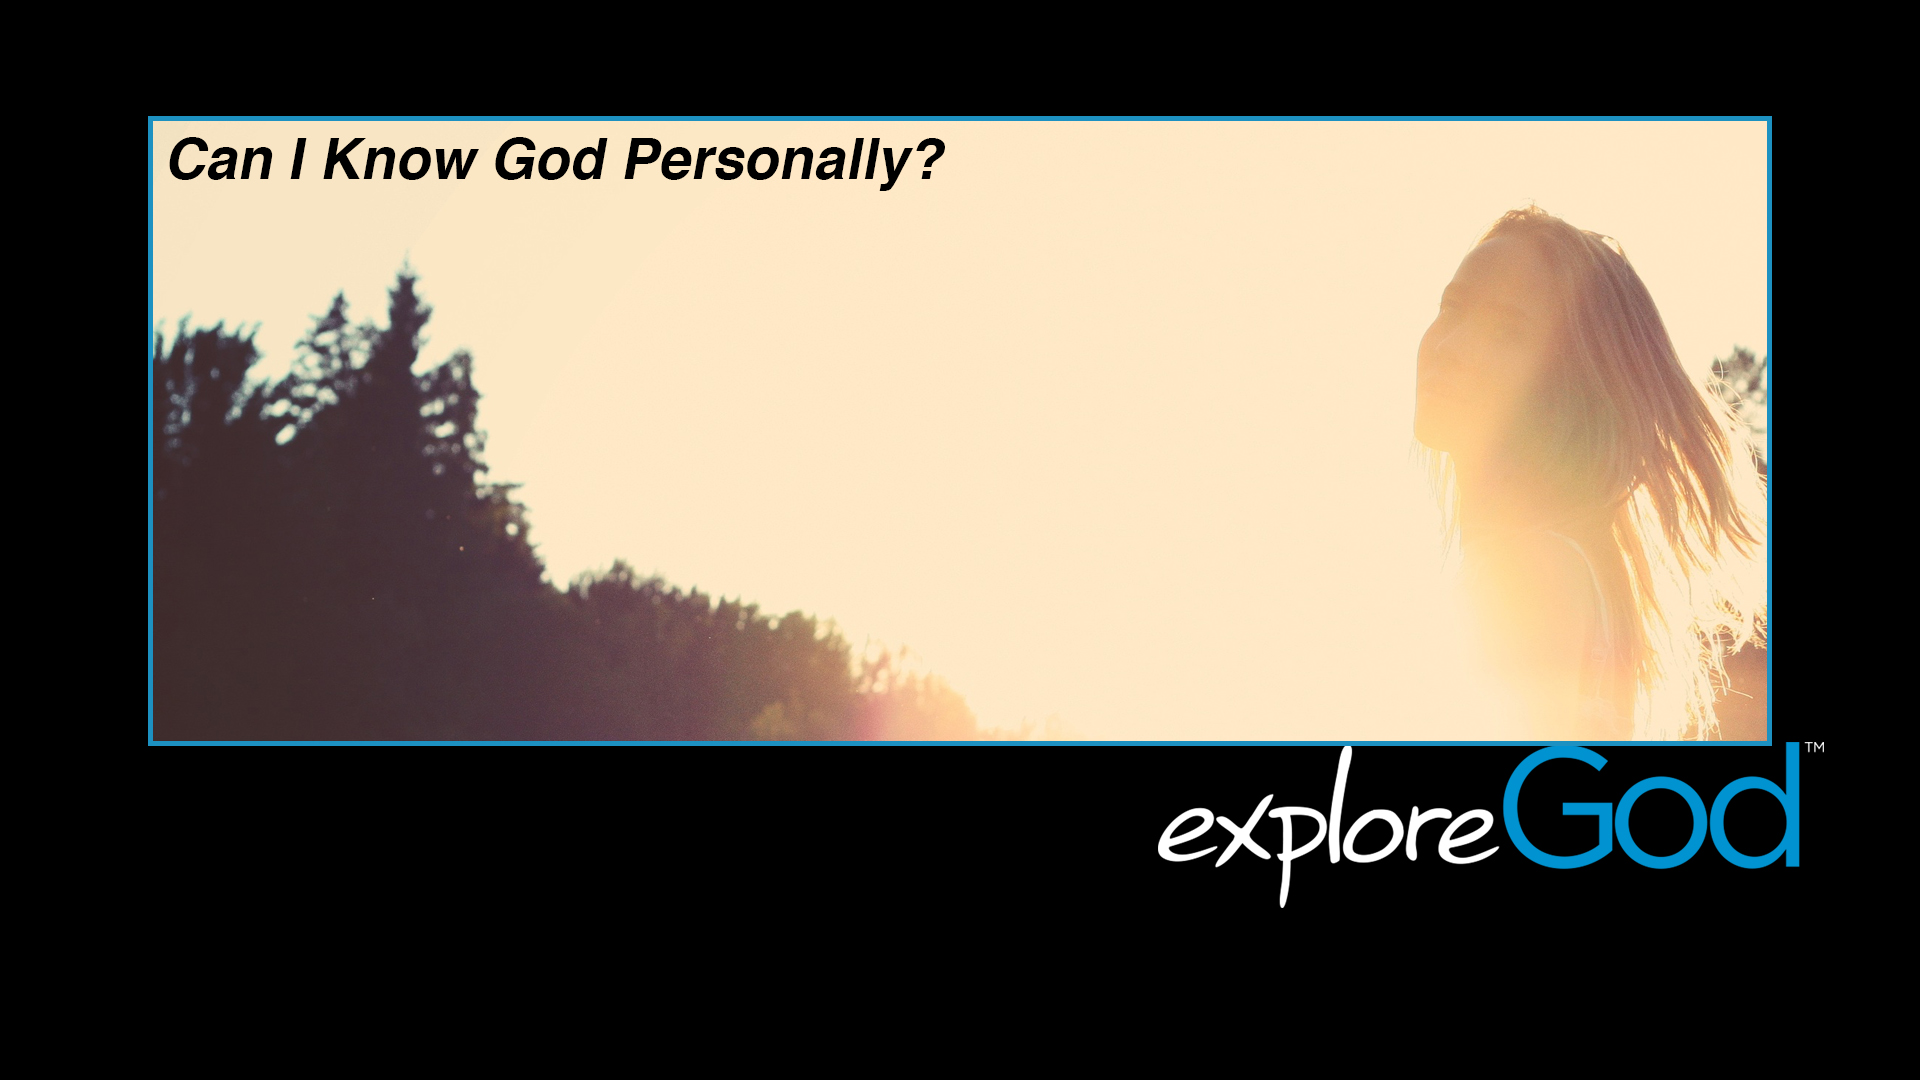 Can I Know God Personally?